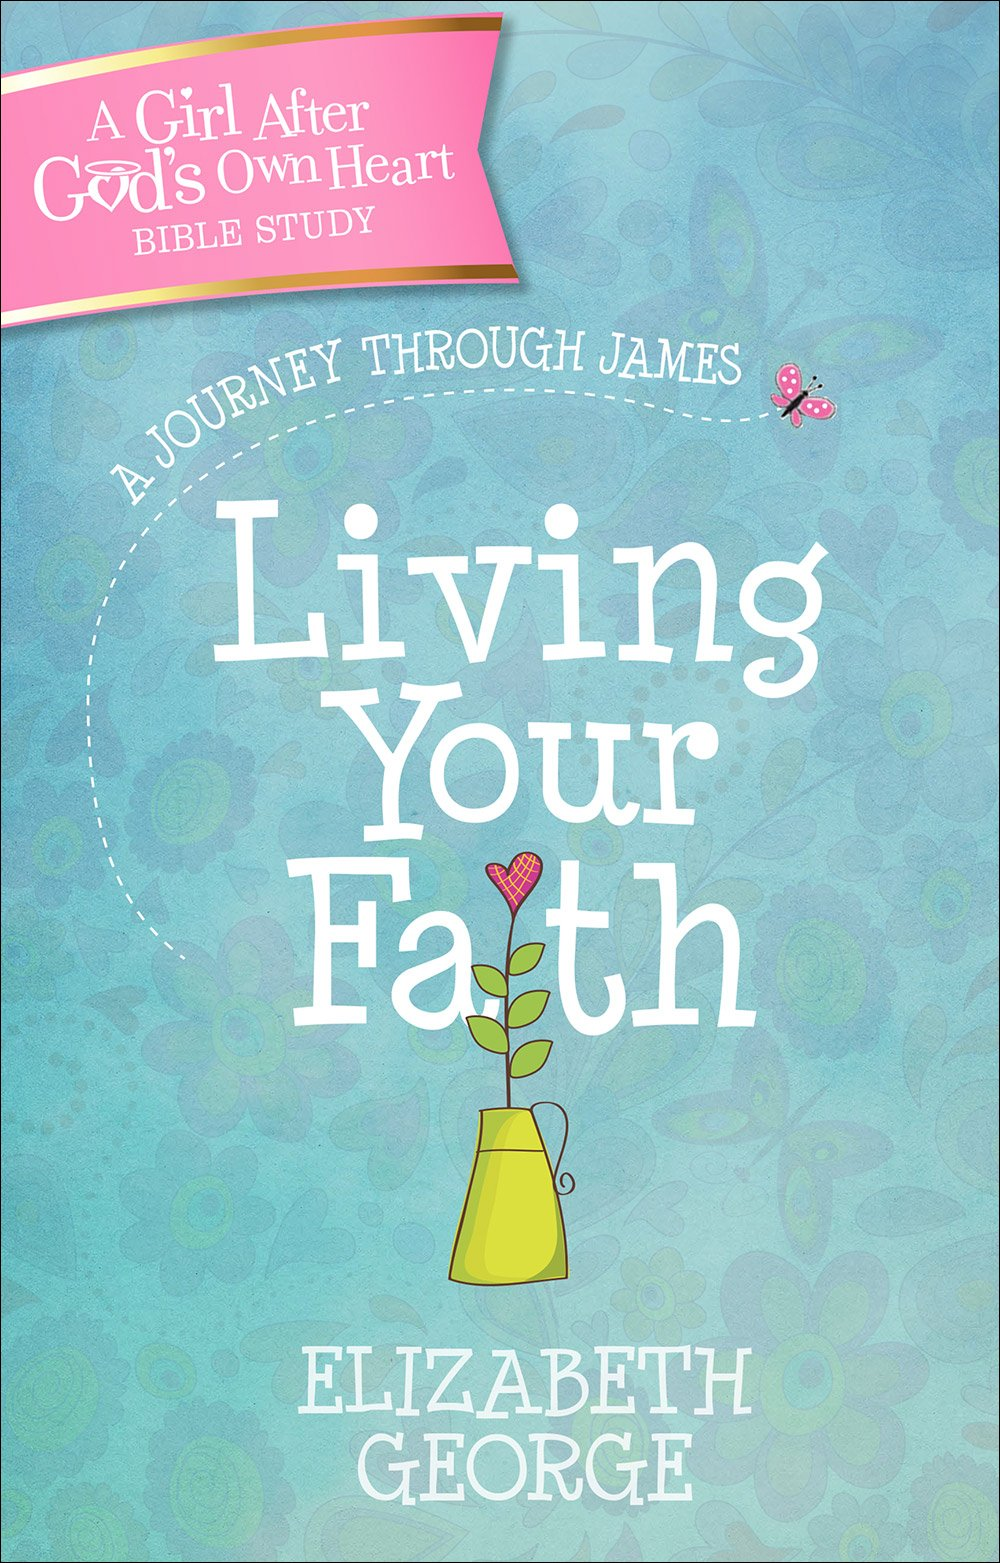 ROCKONLINE | New Creation Church | NCC | Joseph Prince | ROCK Bookshop | ROCK Bookstore | Star Vista | Living Your Faith: A Journey Through James | Devotional | Youth | Christian Living | Prayer | Promises | Bible Verse | Free delivery for Singapore Orders above $50.